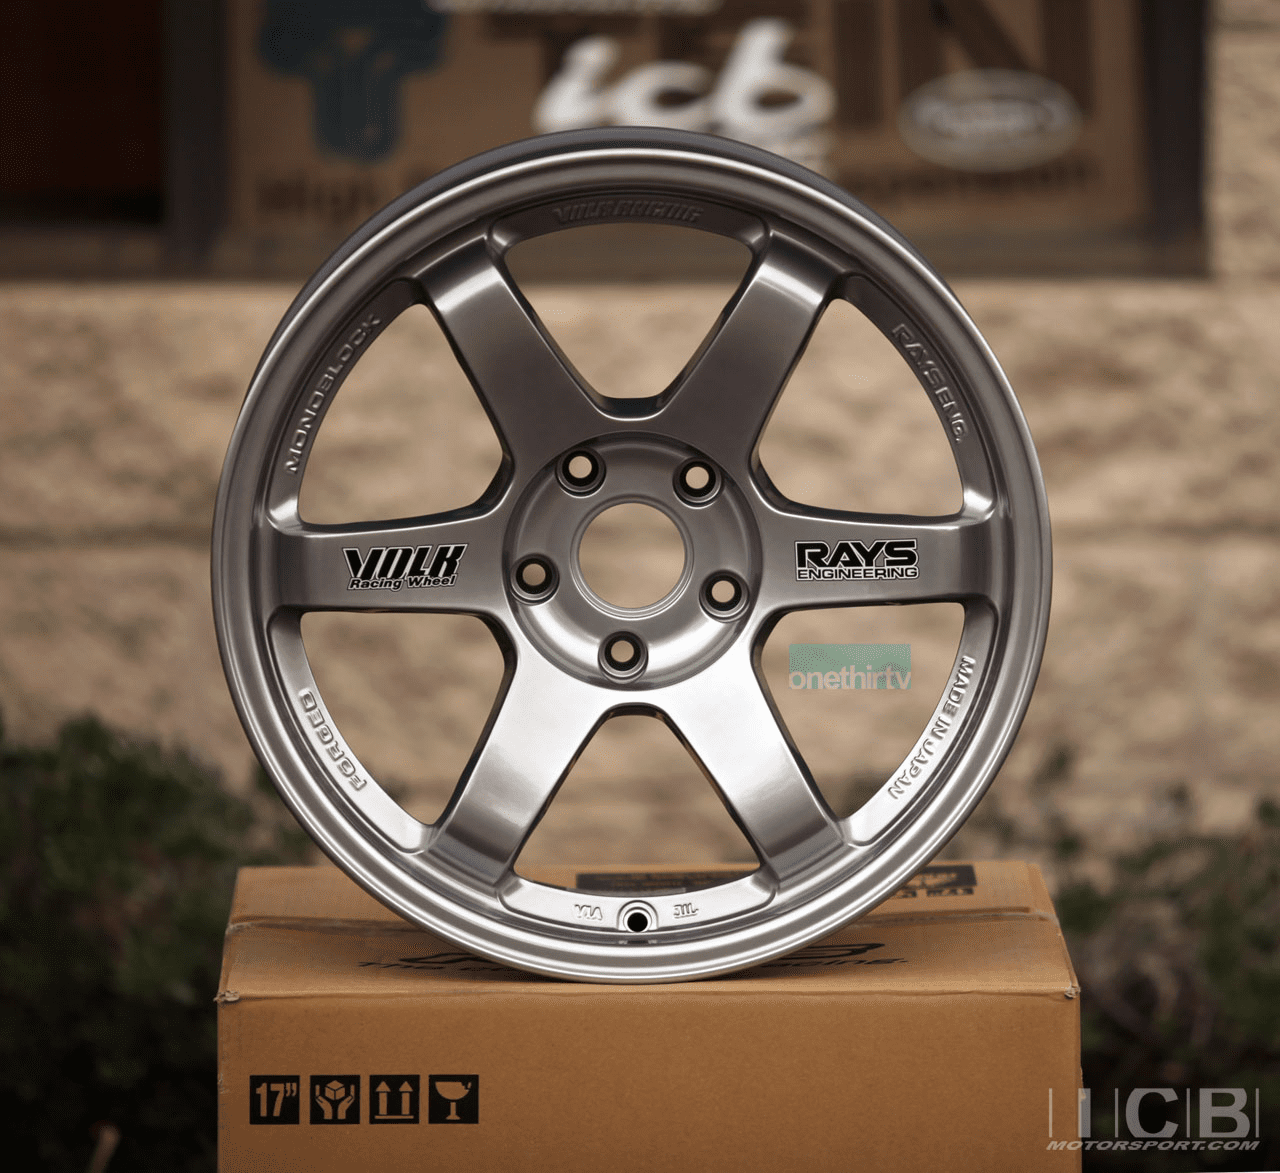 Rays Volk Racing TE37 Wheels 18X10 5X120 +25 Offset BMW M3 E46/92 F80/82 M4 GTR Concave Face Mercury Silver Sold Out